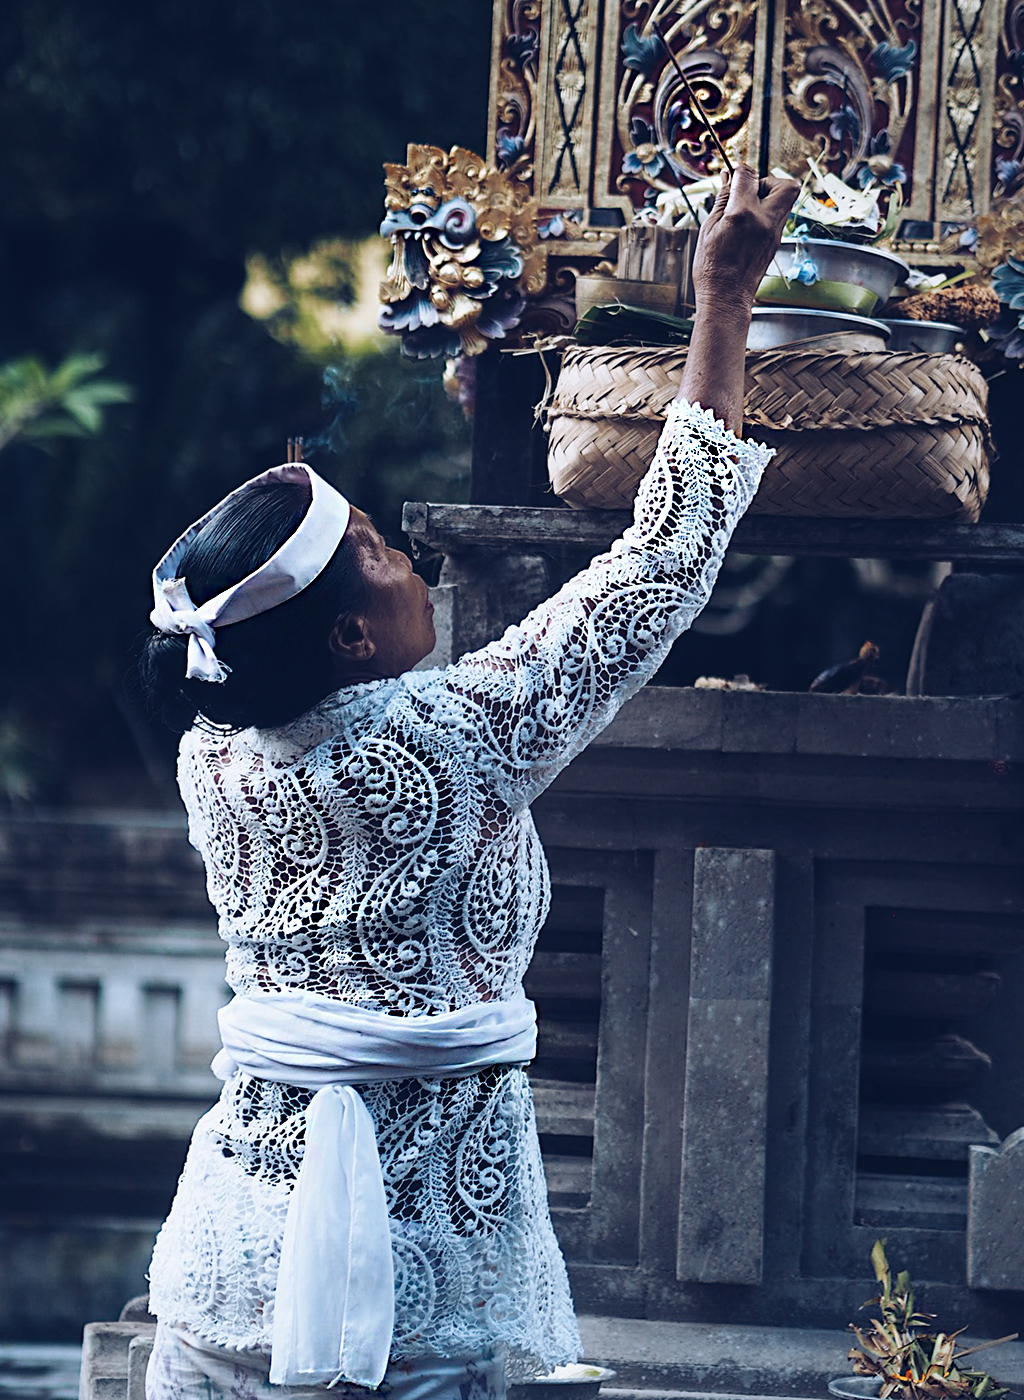 bali-travel-guide-31